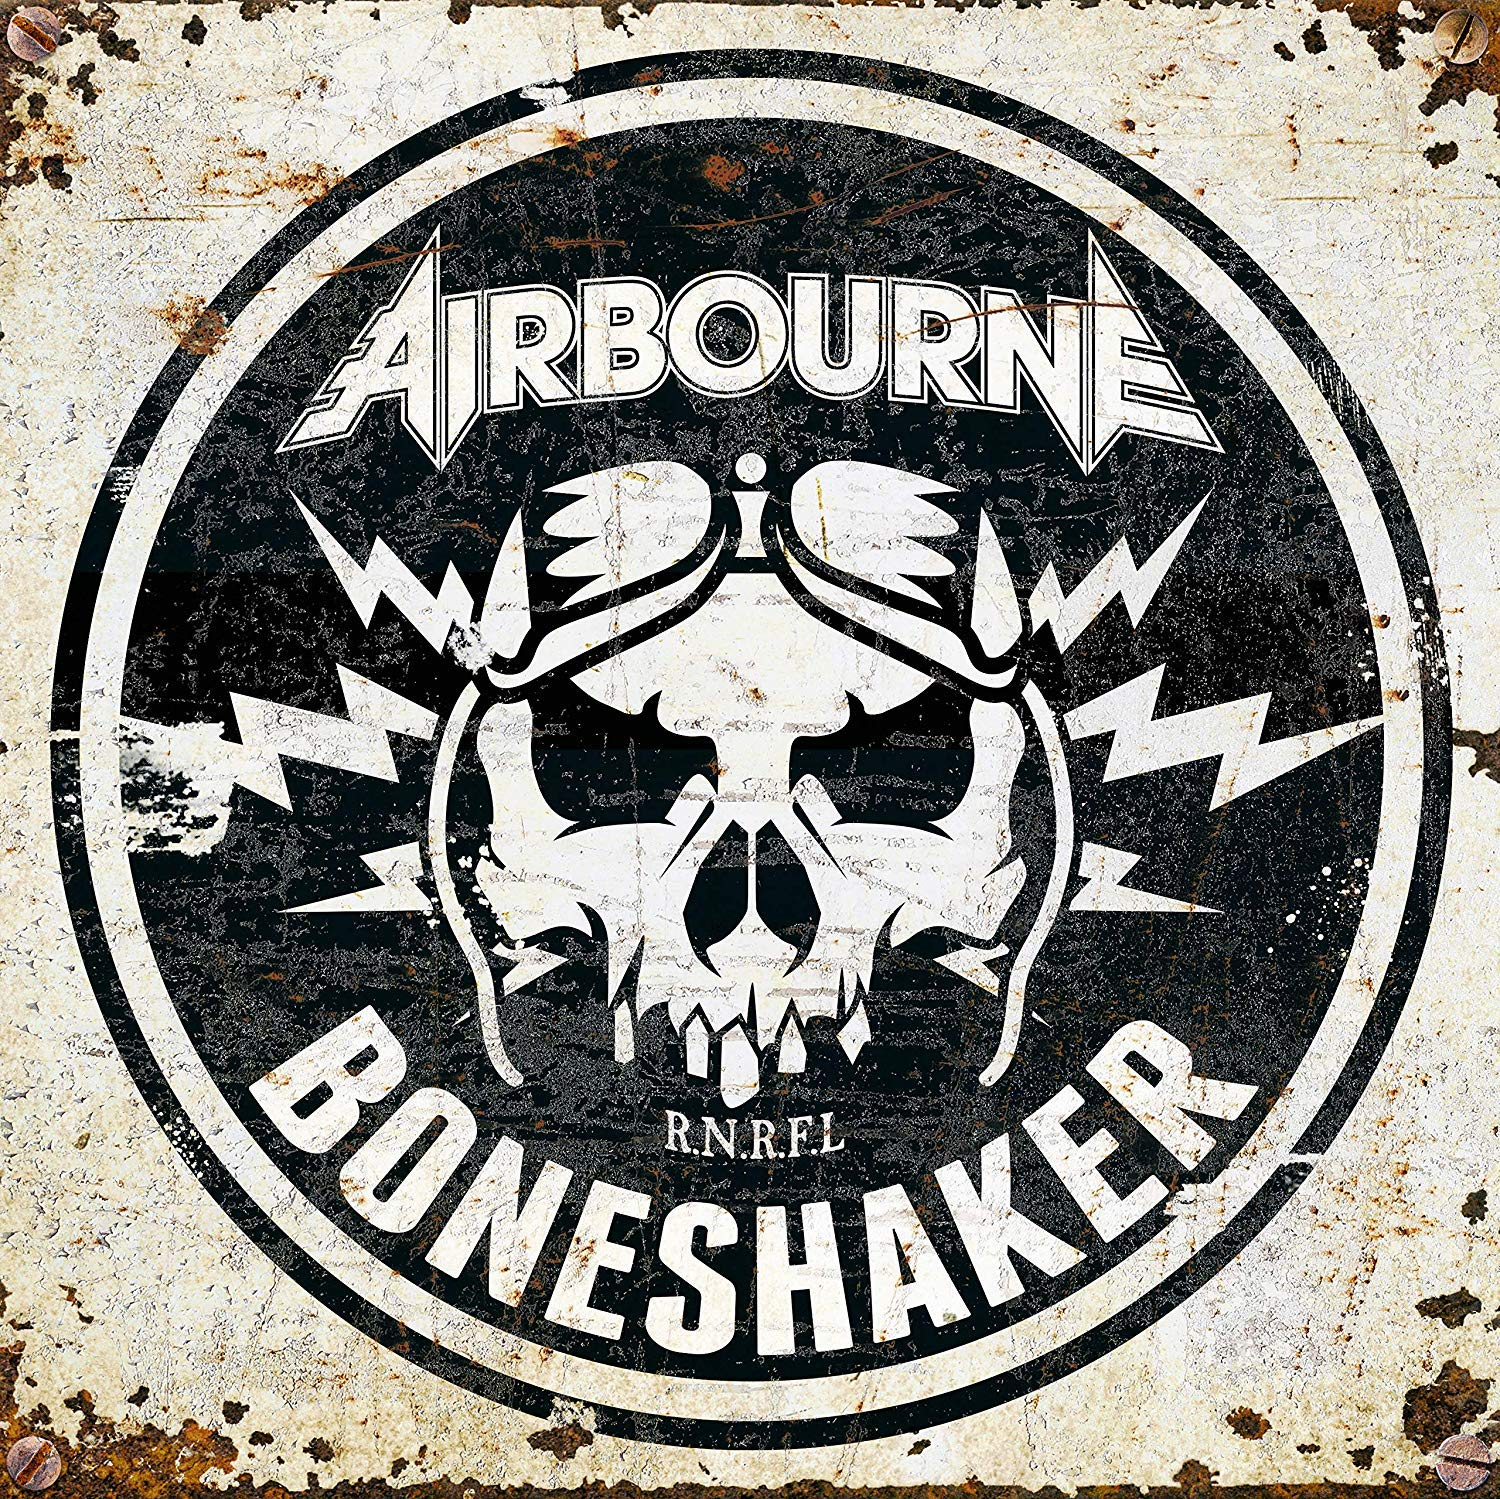 Airbourne - Boneshaker Extremely Limited Nitro Edition Clear Smoked Vinyl